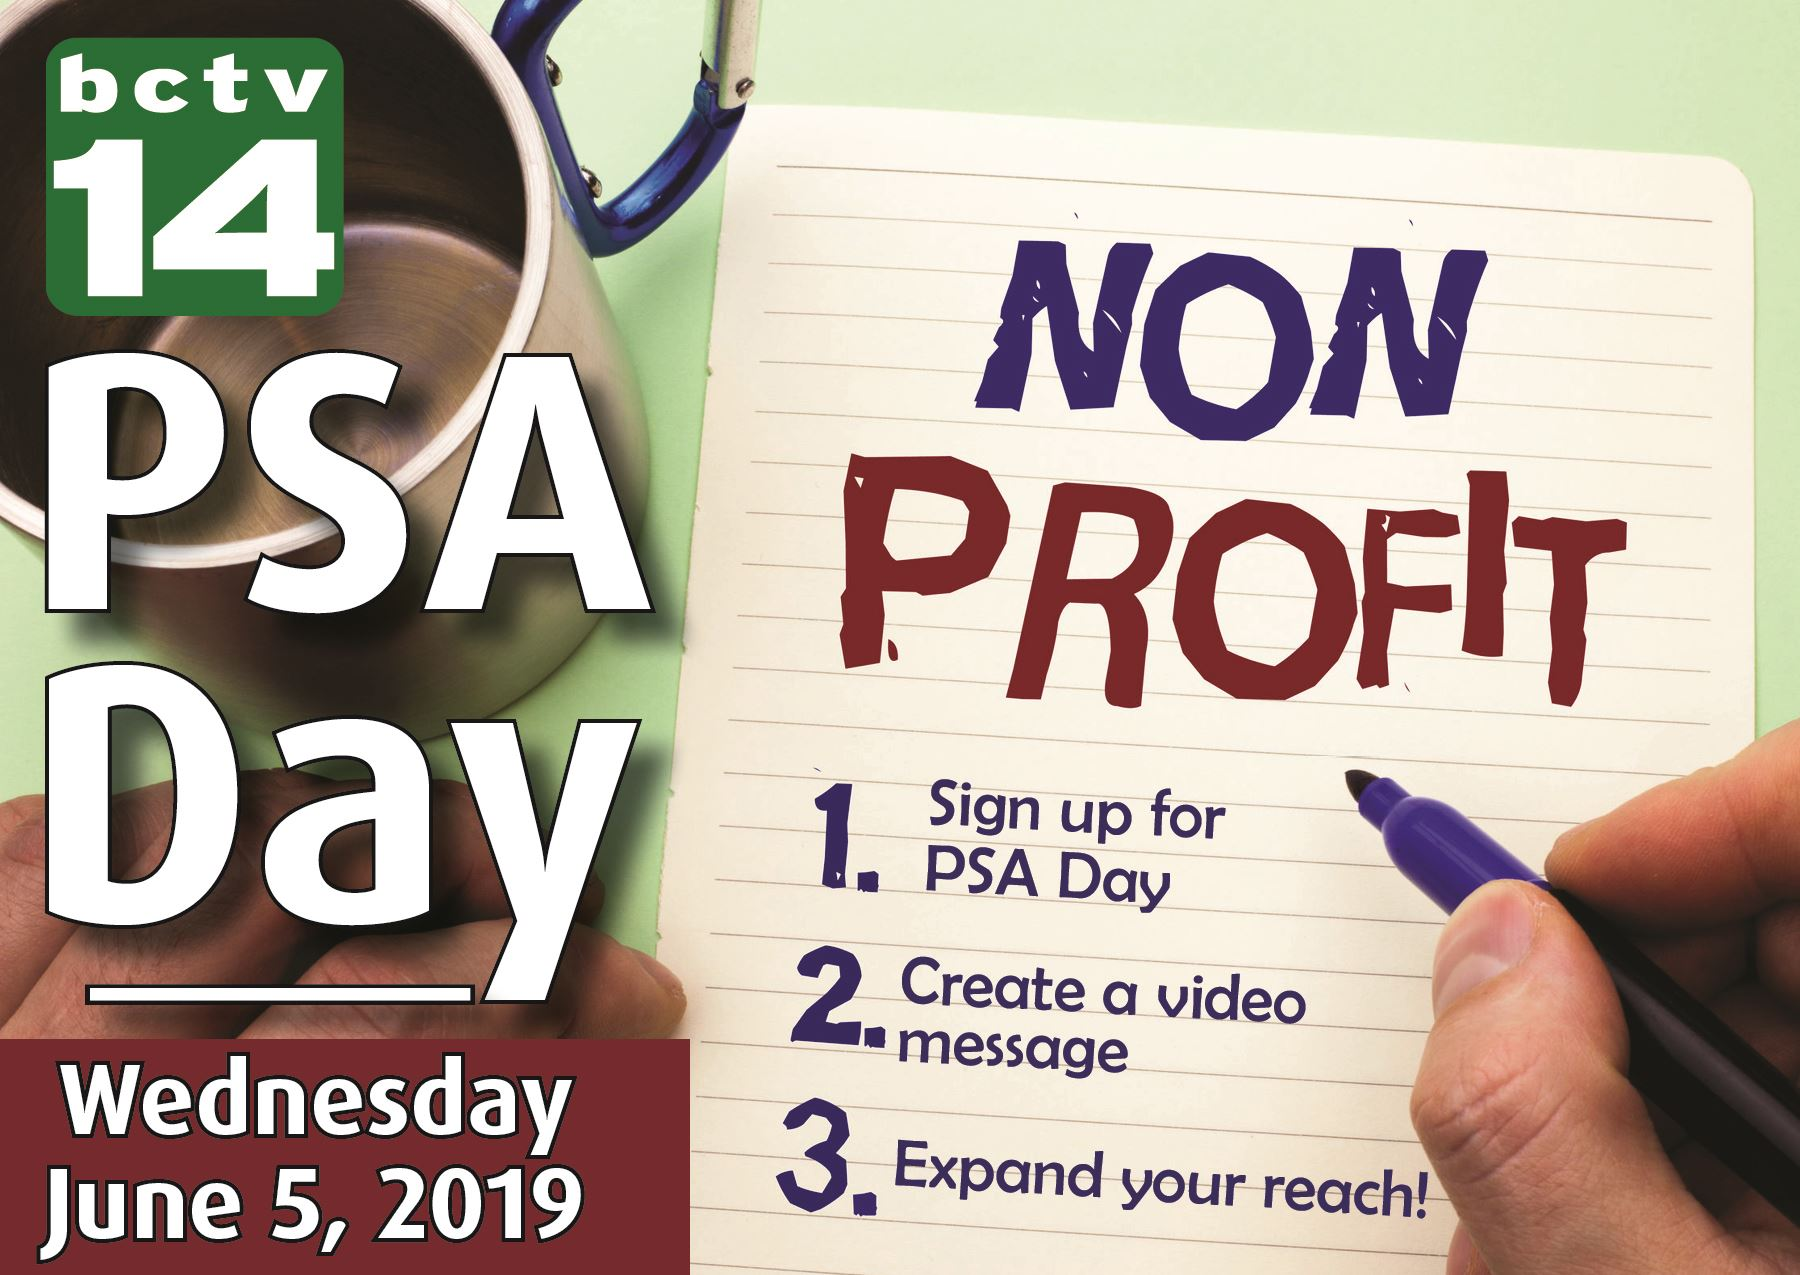 June 2019 Non-profit PSA Day, Wednesday, June 5 hosted by Burnsville Community Television